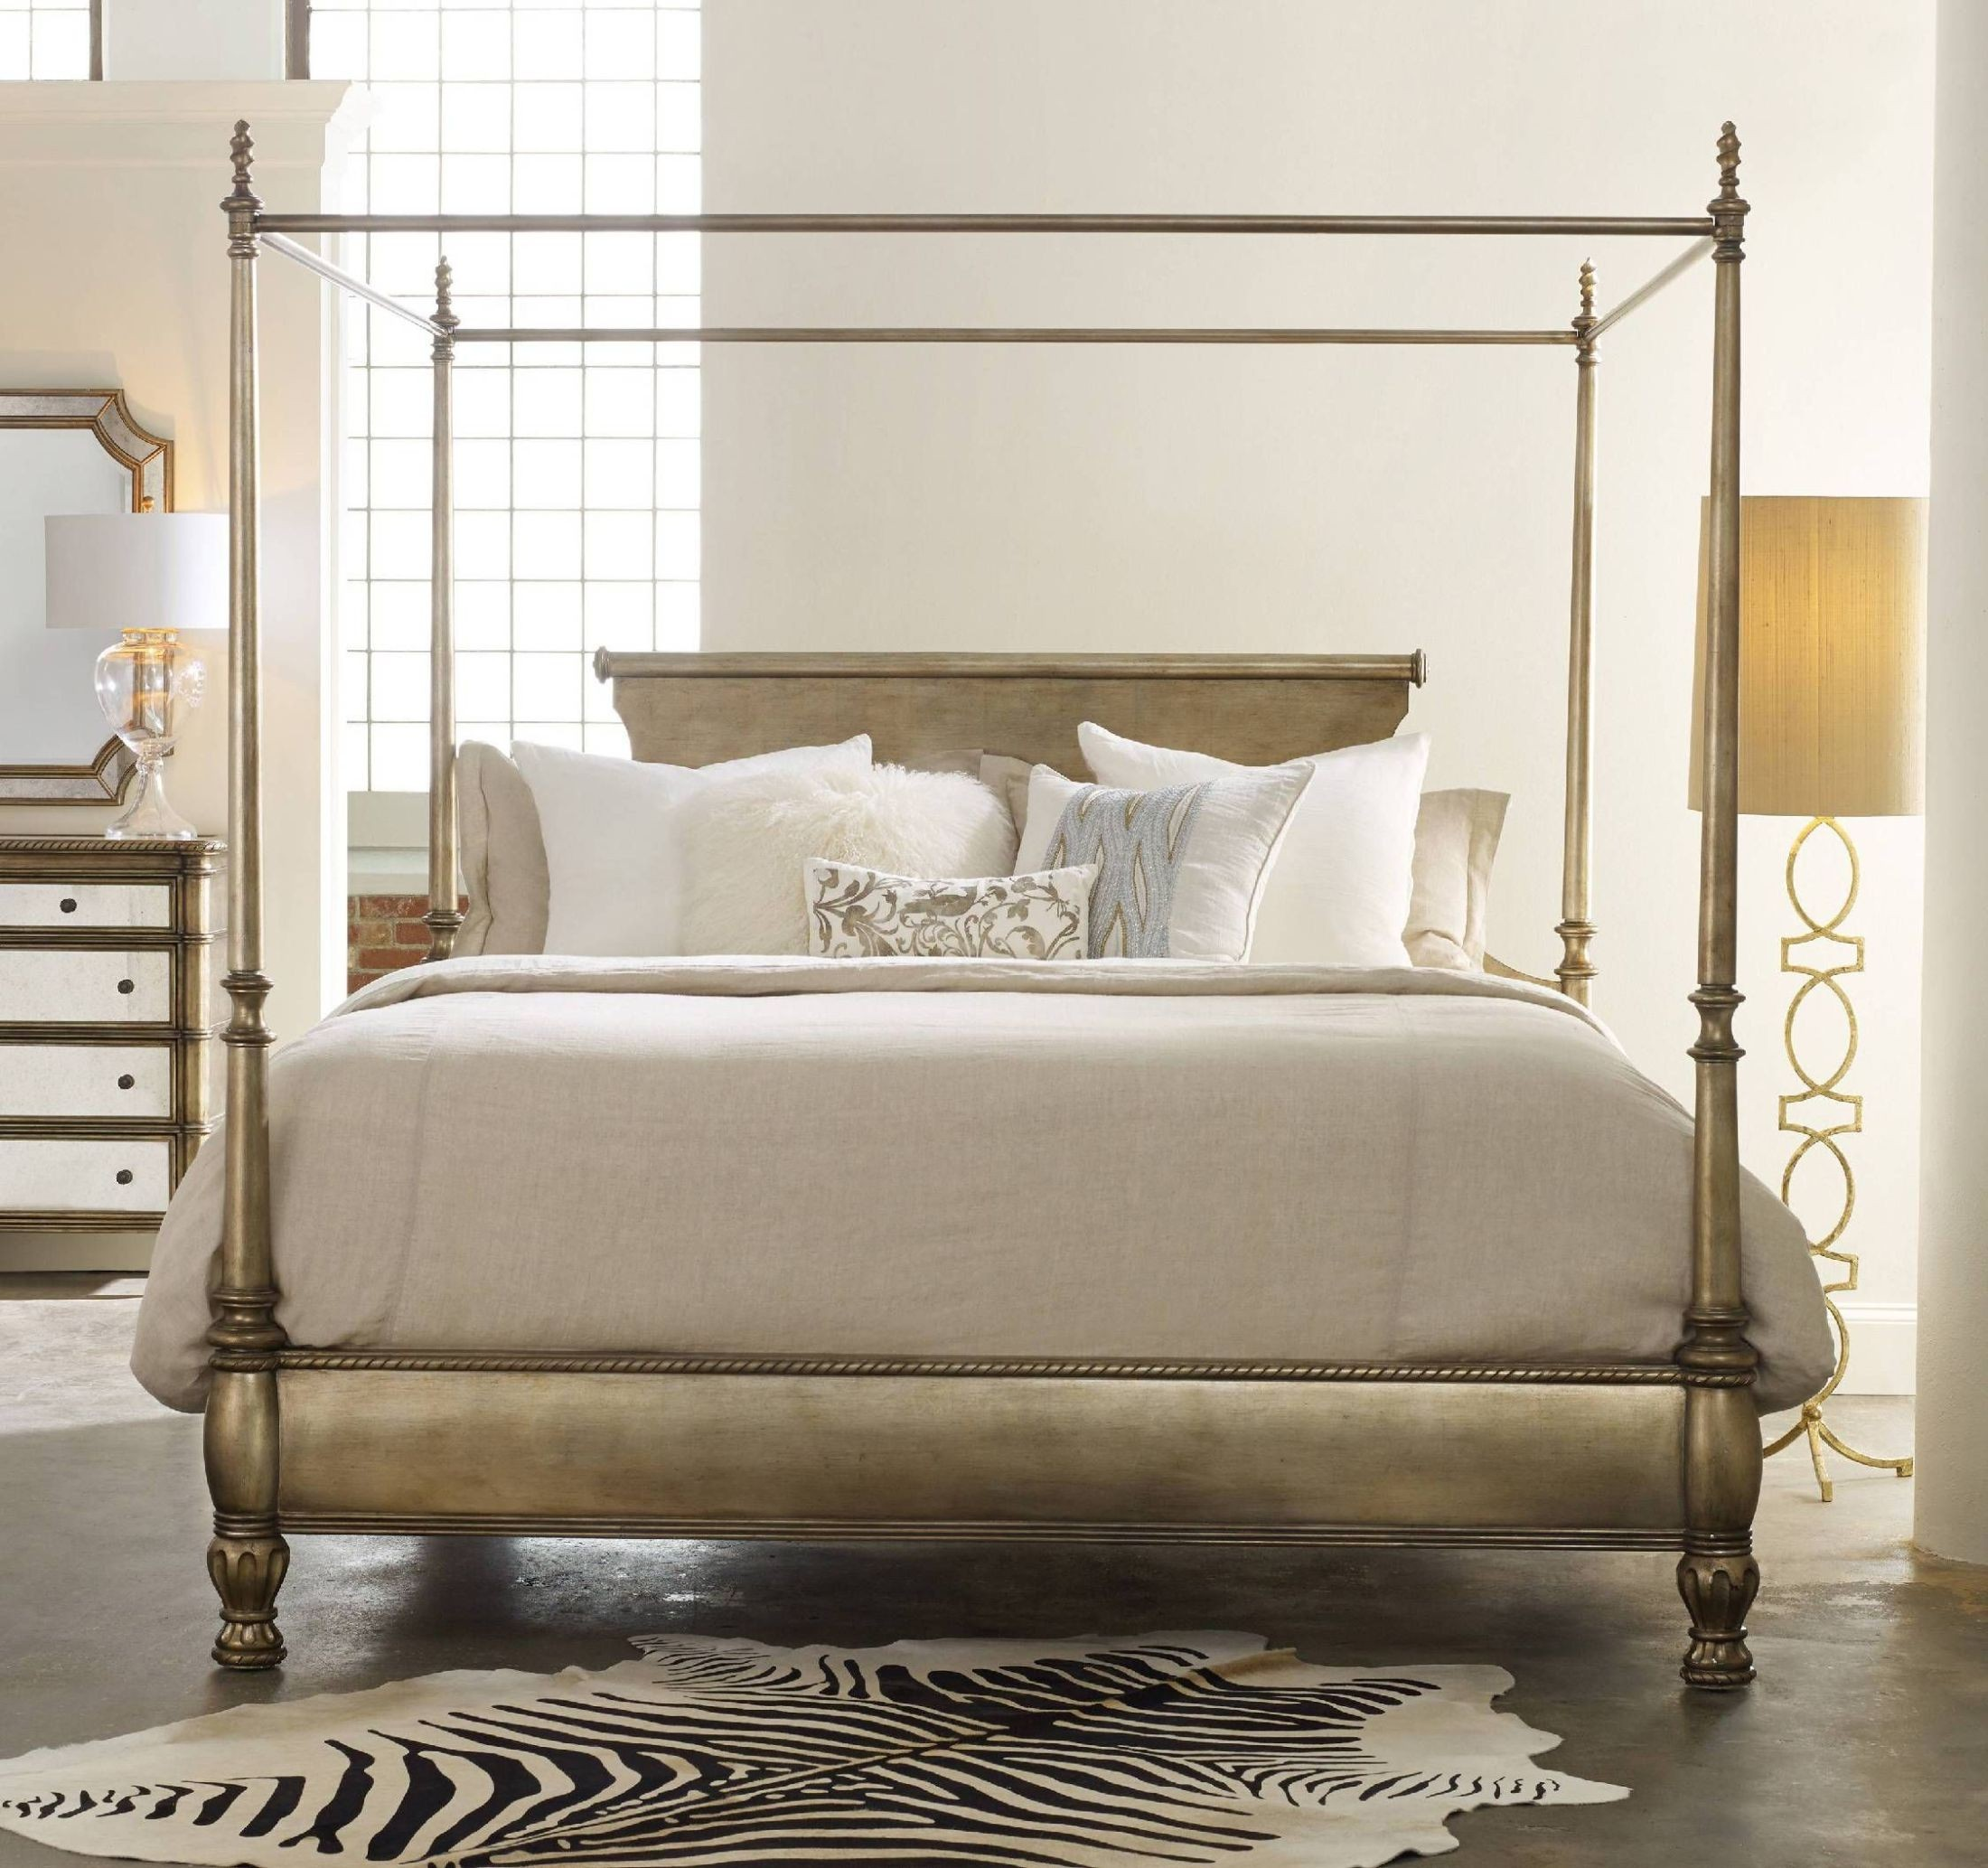 Montage Gold King Canopy Bed From Hooker